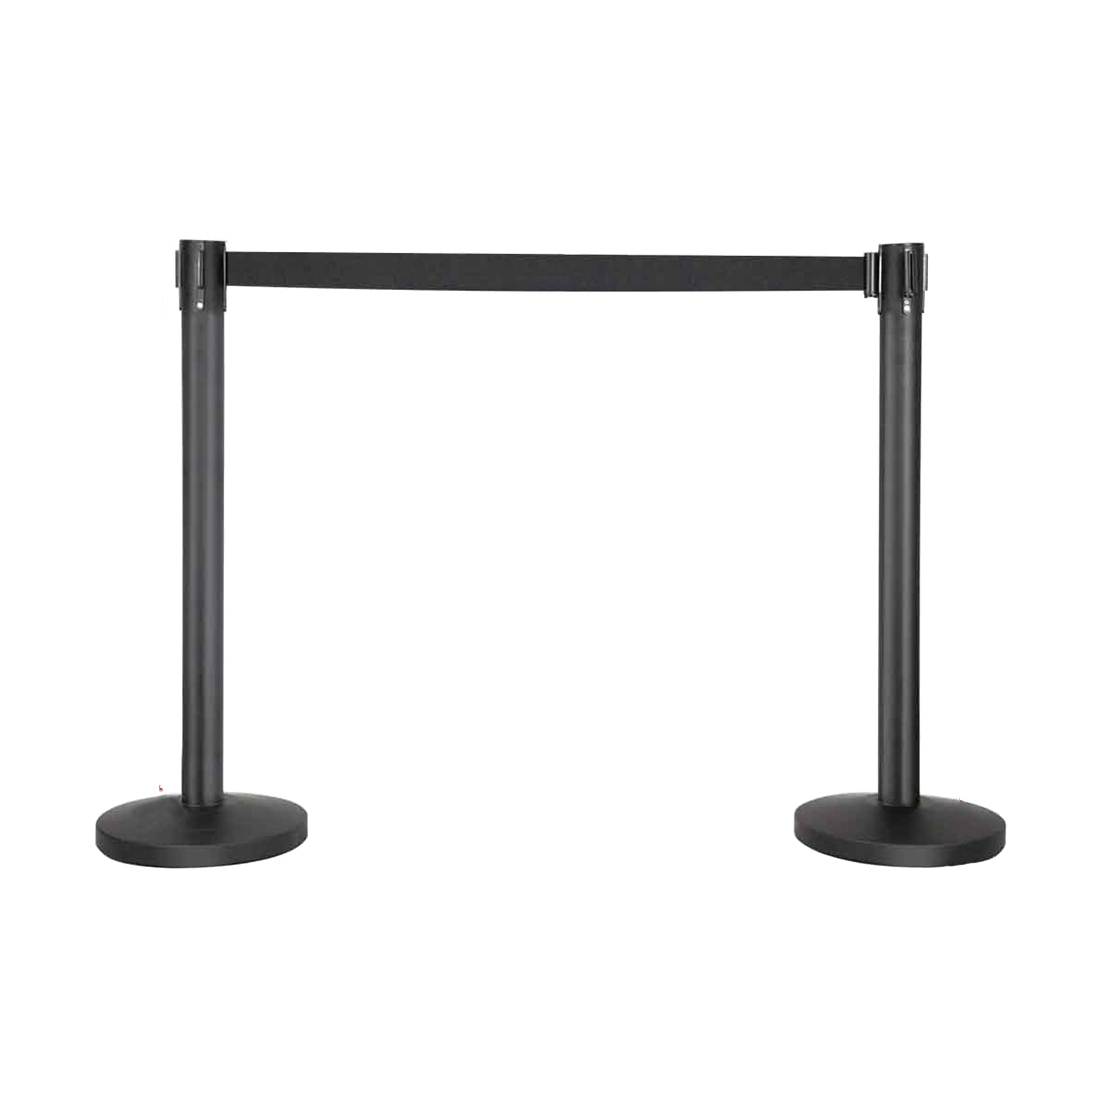 Crowd Control Stanchion Queue Barrier Posts with Retractable Belt Safety/Security Barriers(Black) low price for 2 pcs hotel 3m retractable belt vip crowdcontrol retractable tensa barriers queue way post